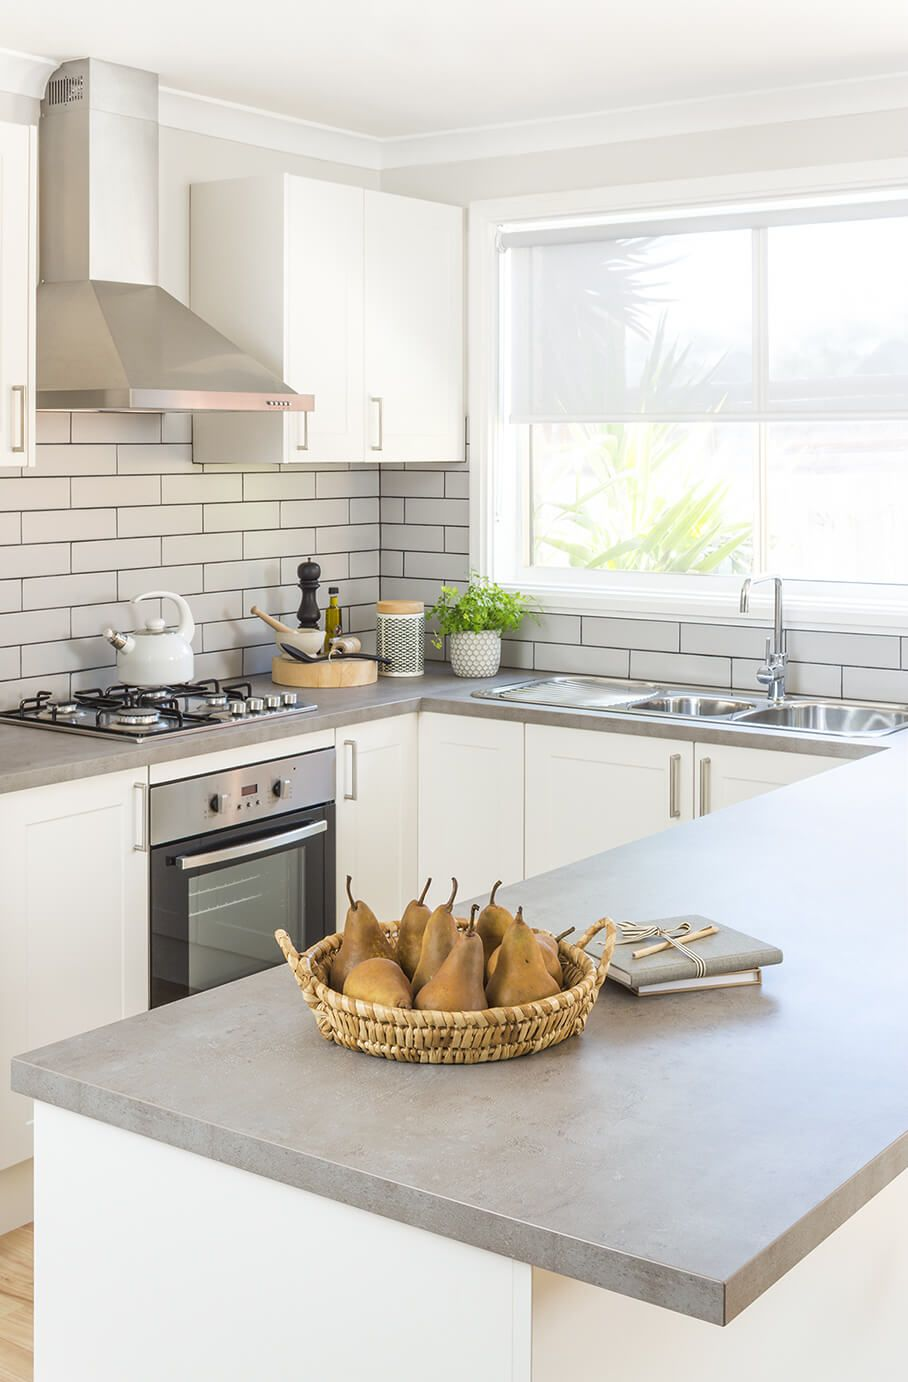 Check Out The Latest Kitchen Design Trends And Inspiration Made Possible And Affordable For Everyday Kitchen Layout New Kitchen Designs Kitchen Design Trends New kitchen design trends